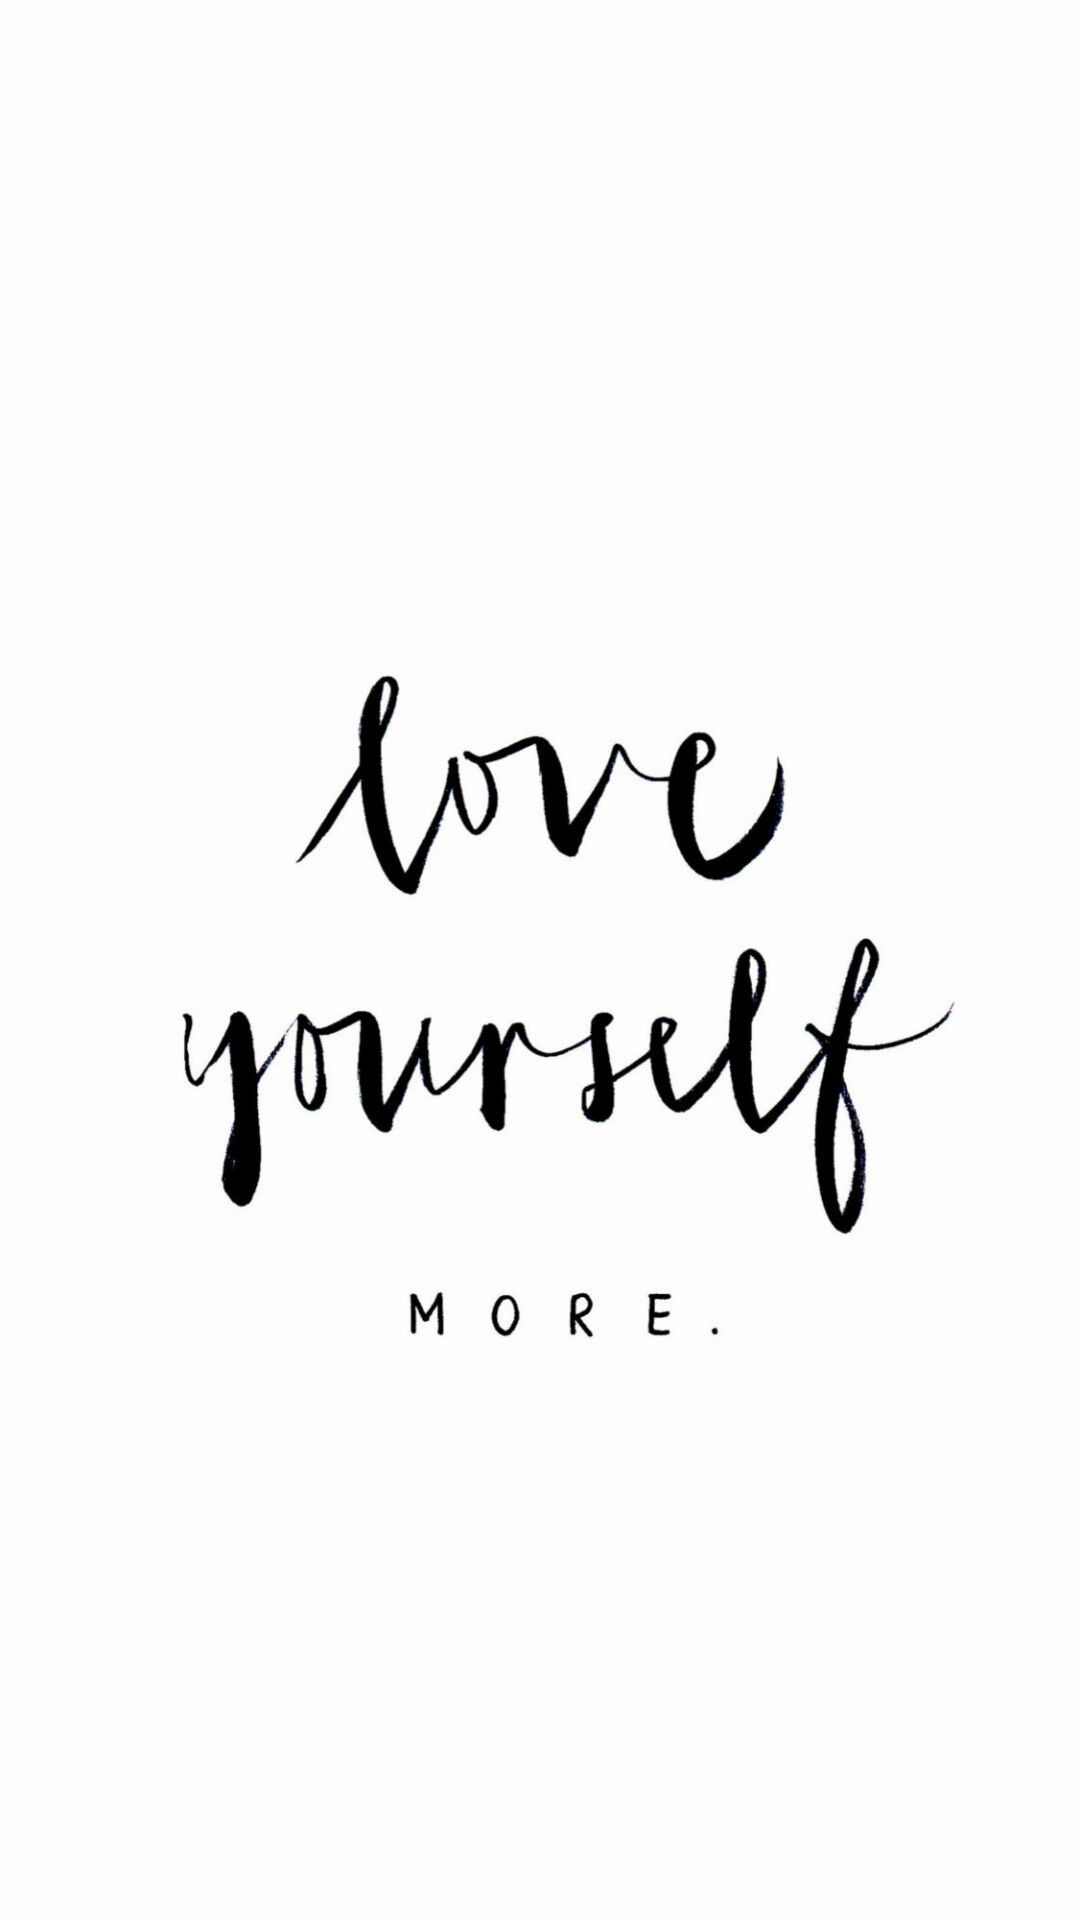 Love Yourself More You Deserve The Give To Everyone Else Eatingdisorderrecovery